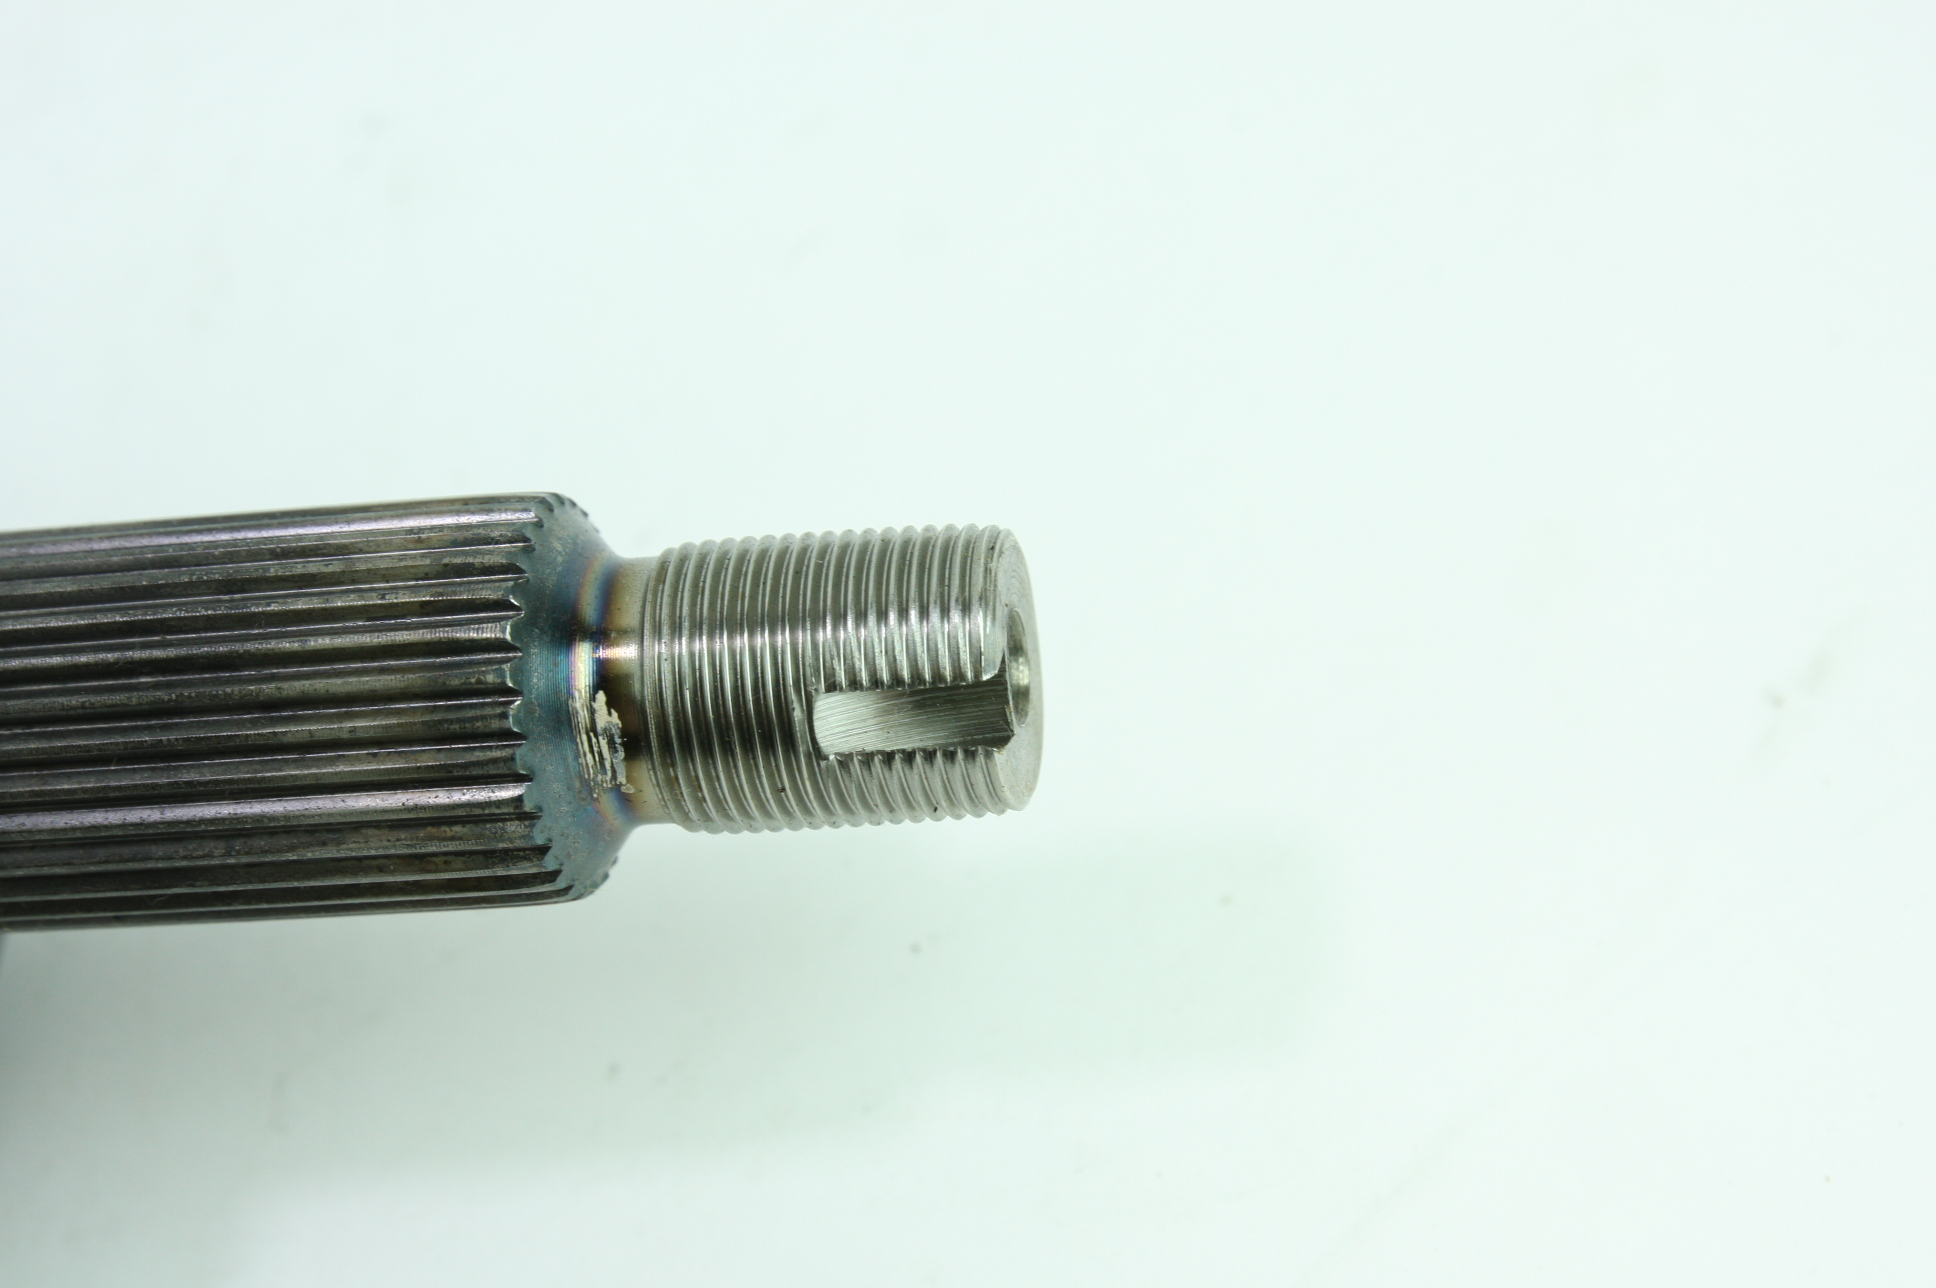 ** Genuine Kia Front Left CV Axle Assembly New OEM 495002T700 Fast Free Shipping - image 7